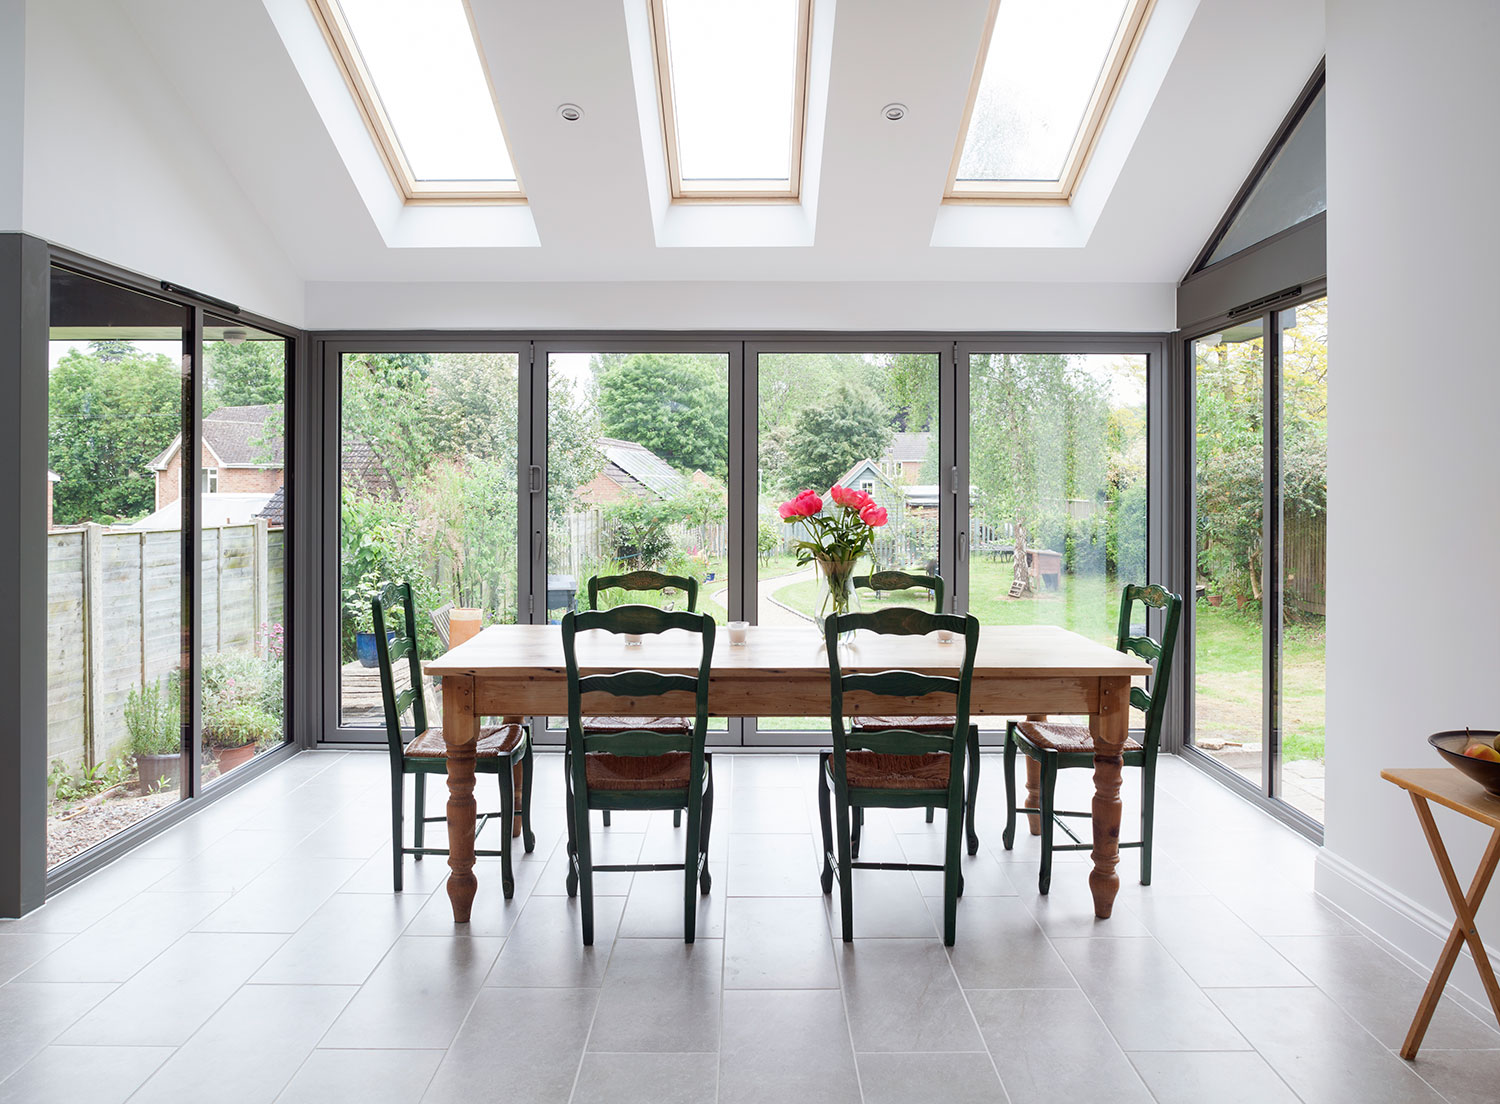 Image result for double Glazed Windows